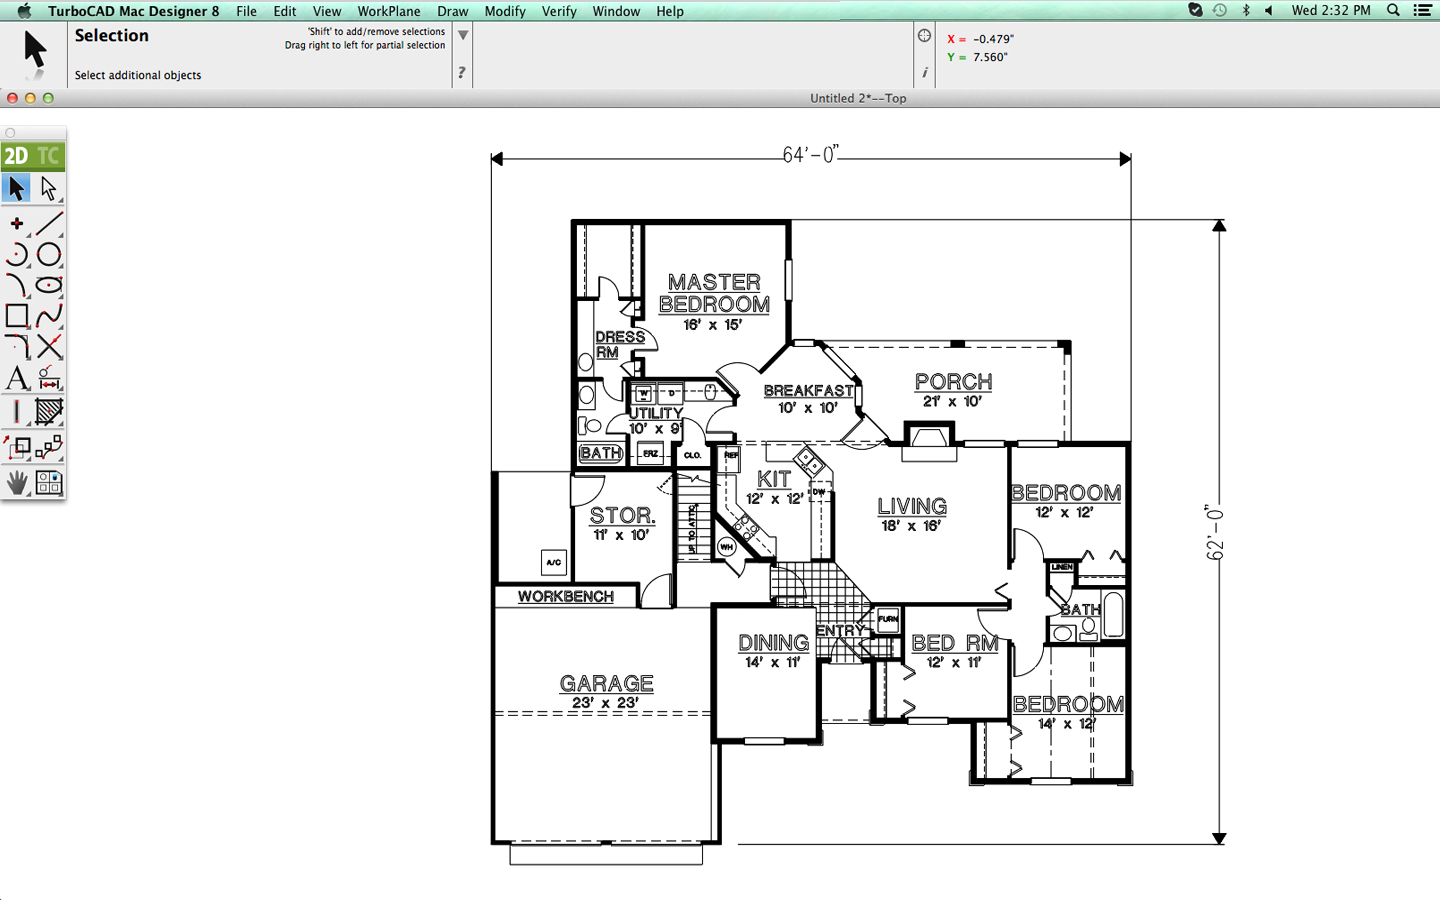 TurboCAD-Mac-Designer-Floorplan